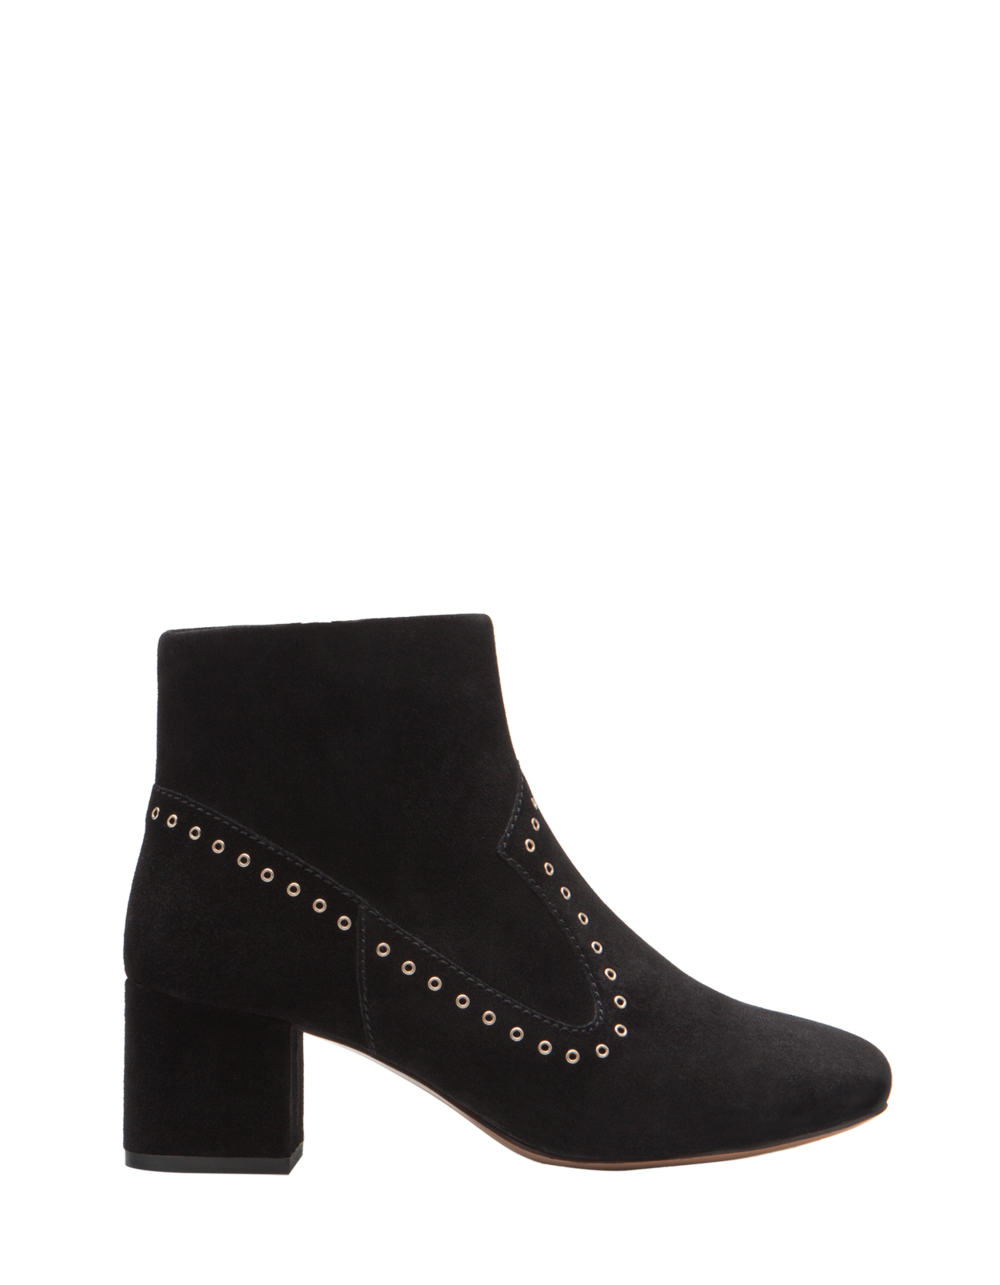 Stradivarius_fw15_shoes (3).png